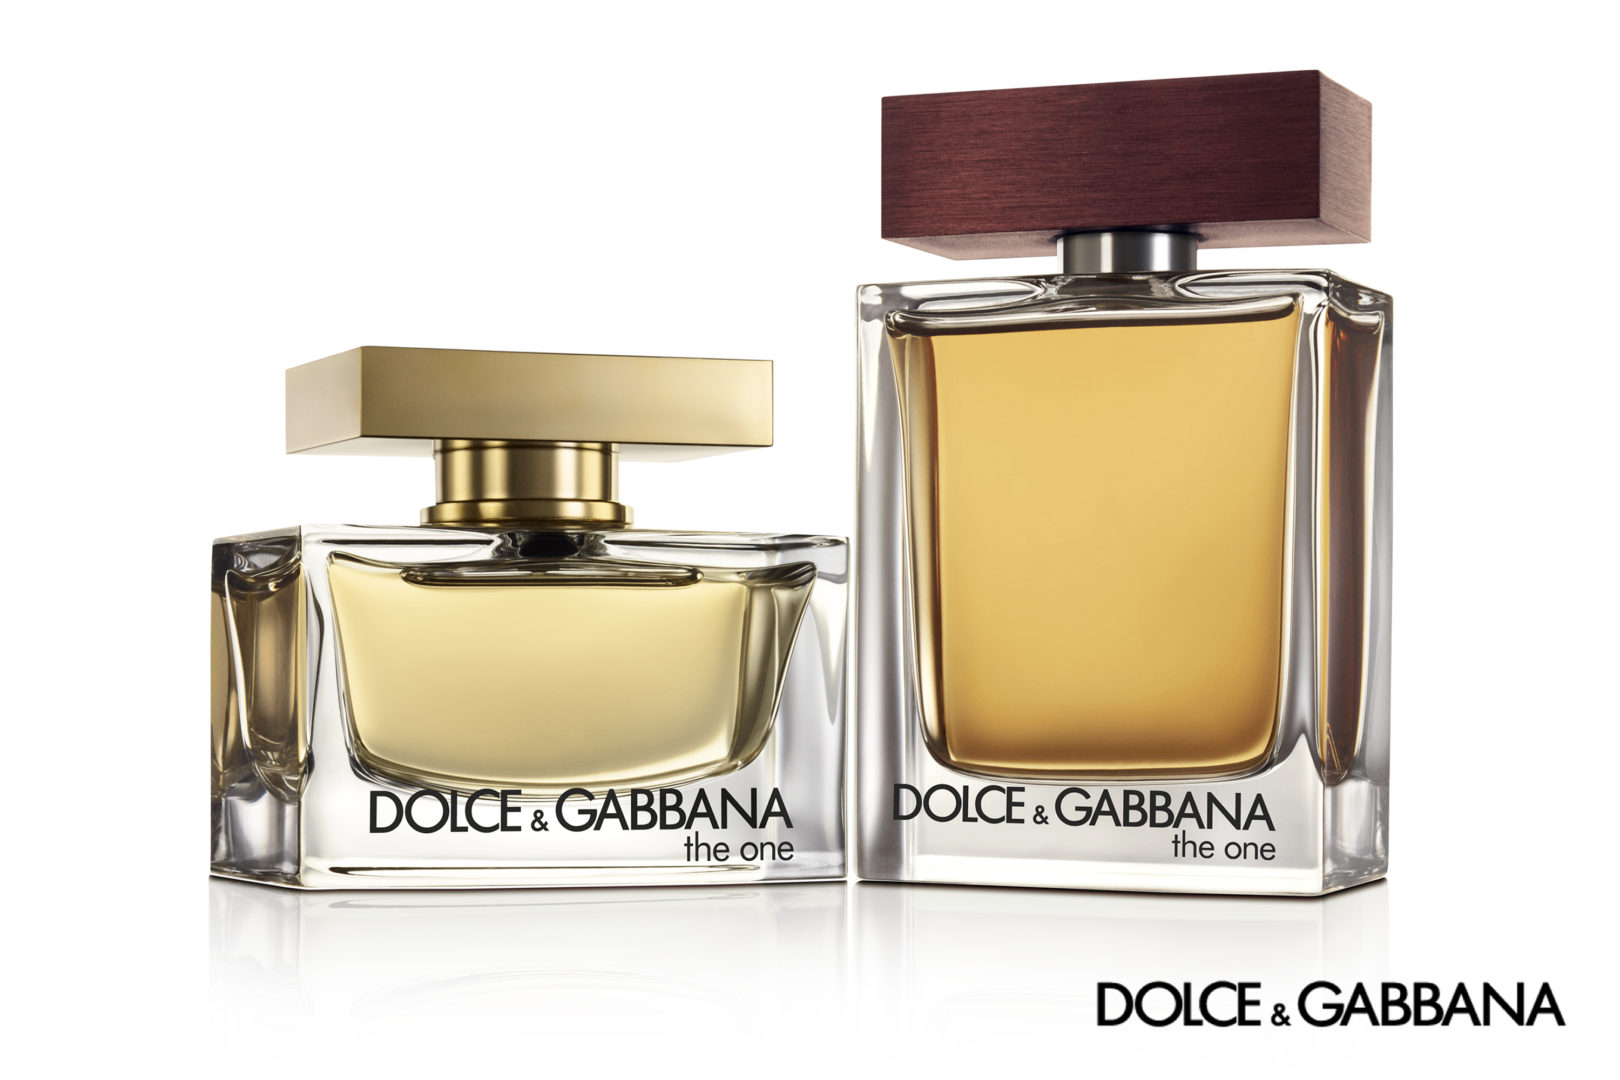 Dolce Gabbana Parfum bottle the one